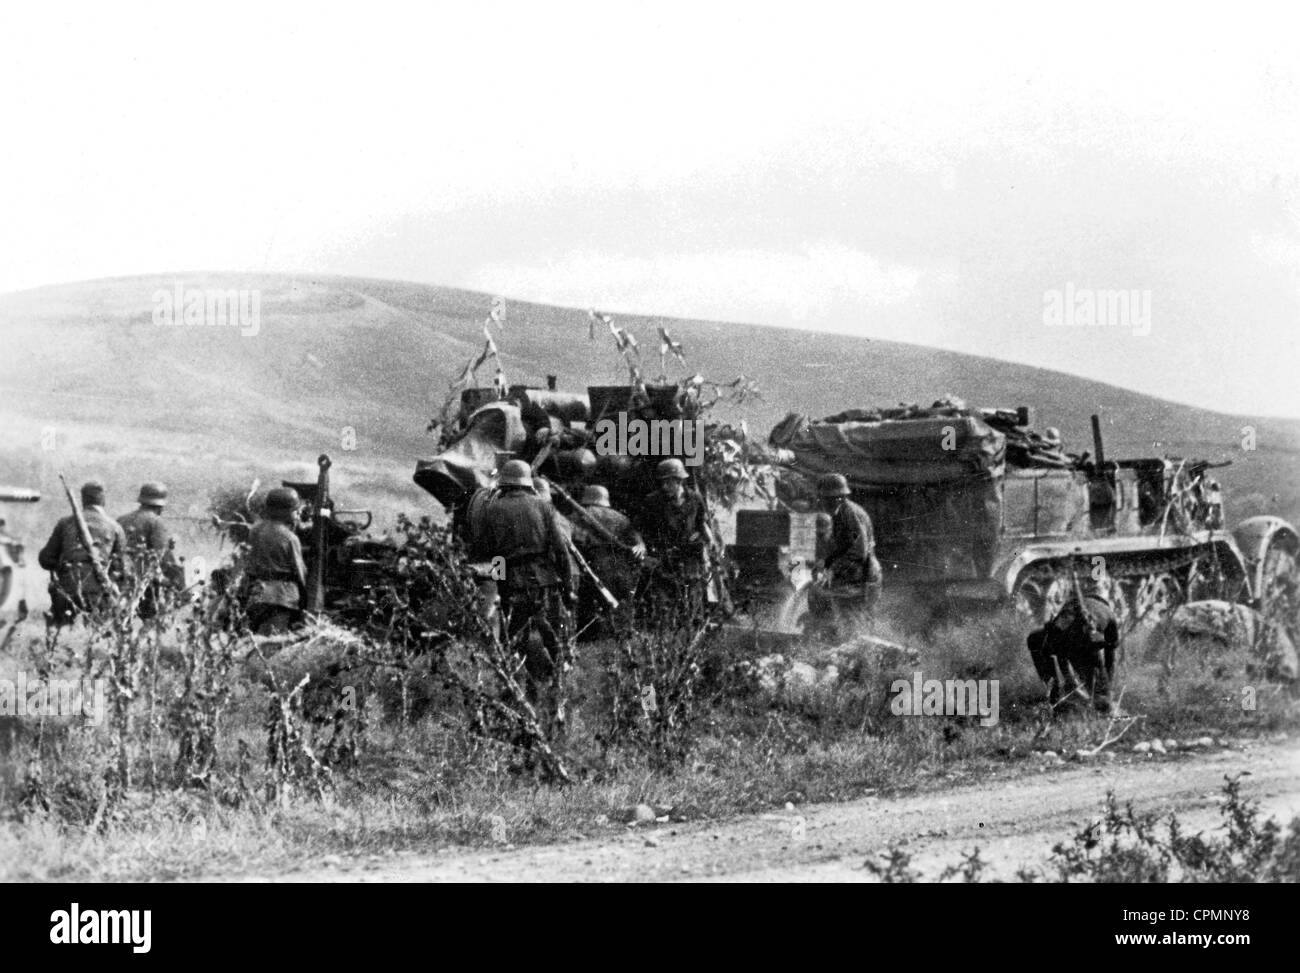 German 8.8cm Flak 36 on the Eastern Front, 1942 - Stock Image